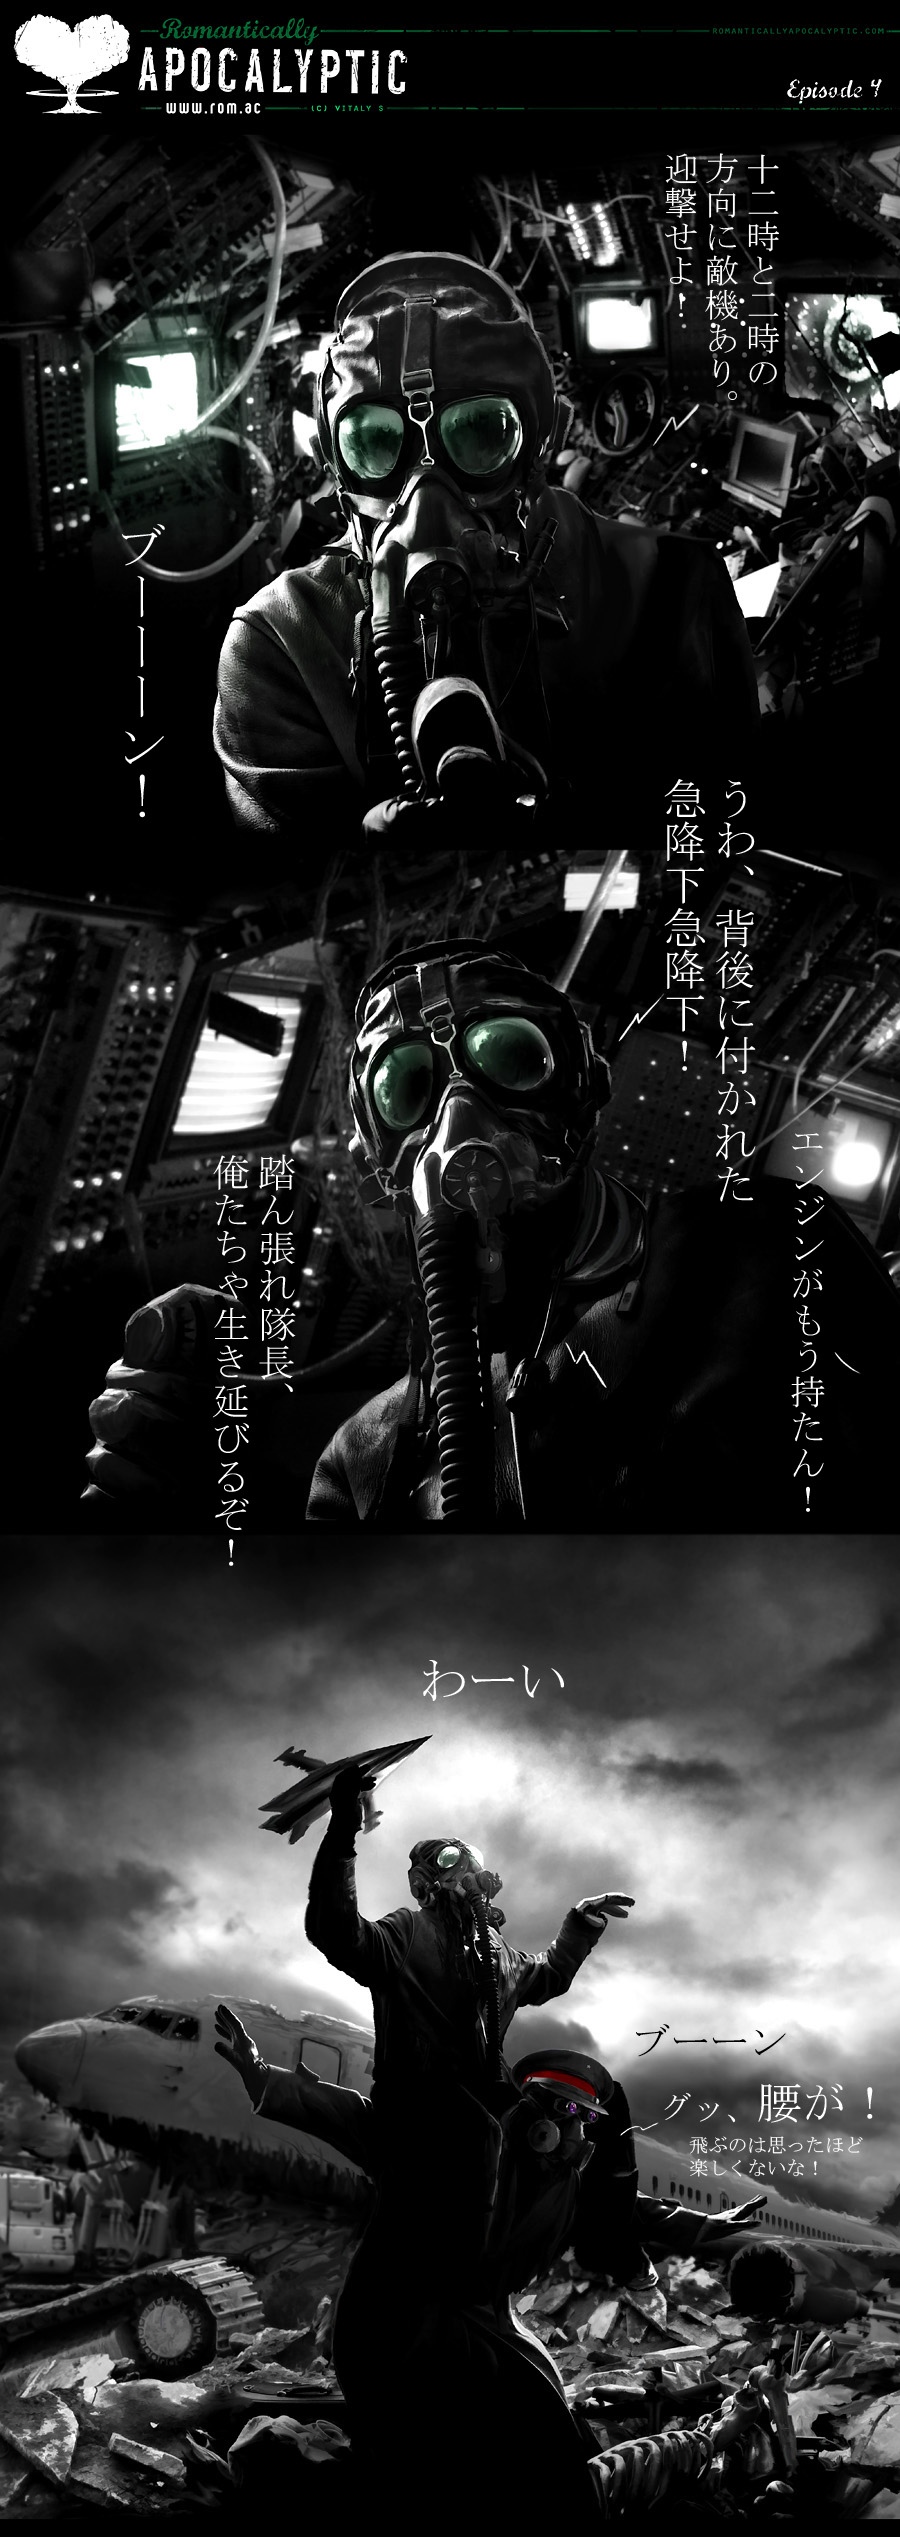 Romantically Apocalyptic 004JP by Deoxyribonucleic